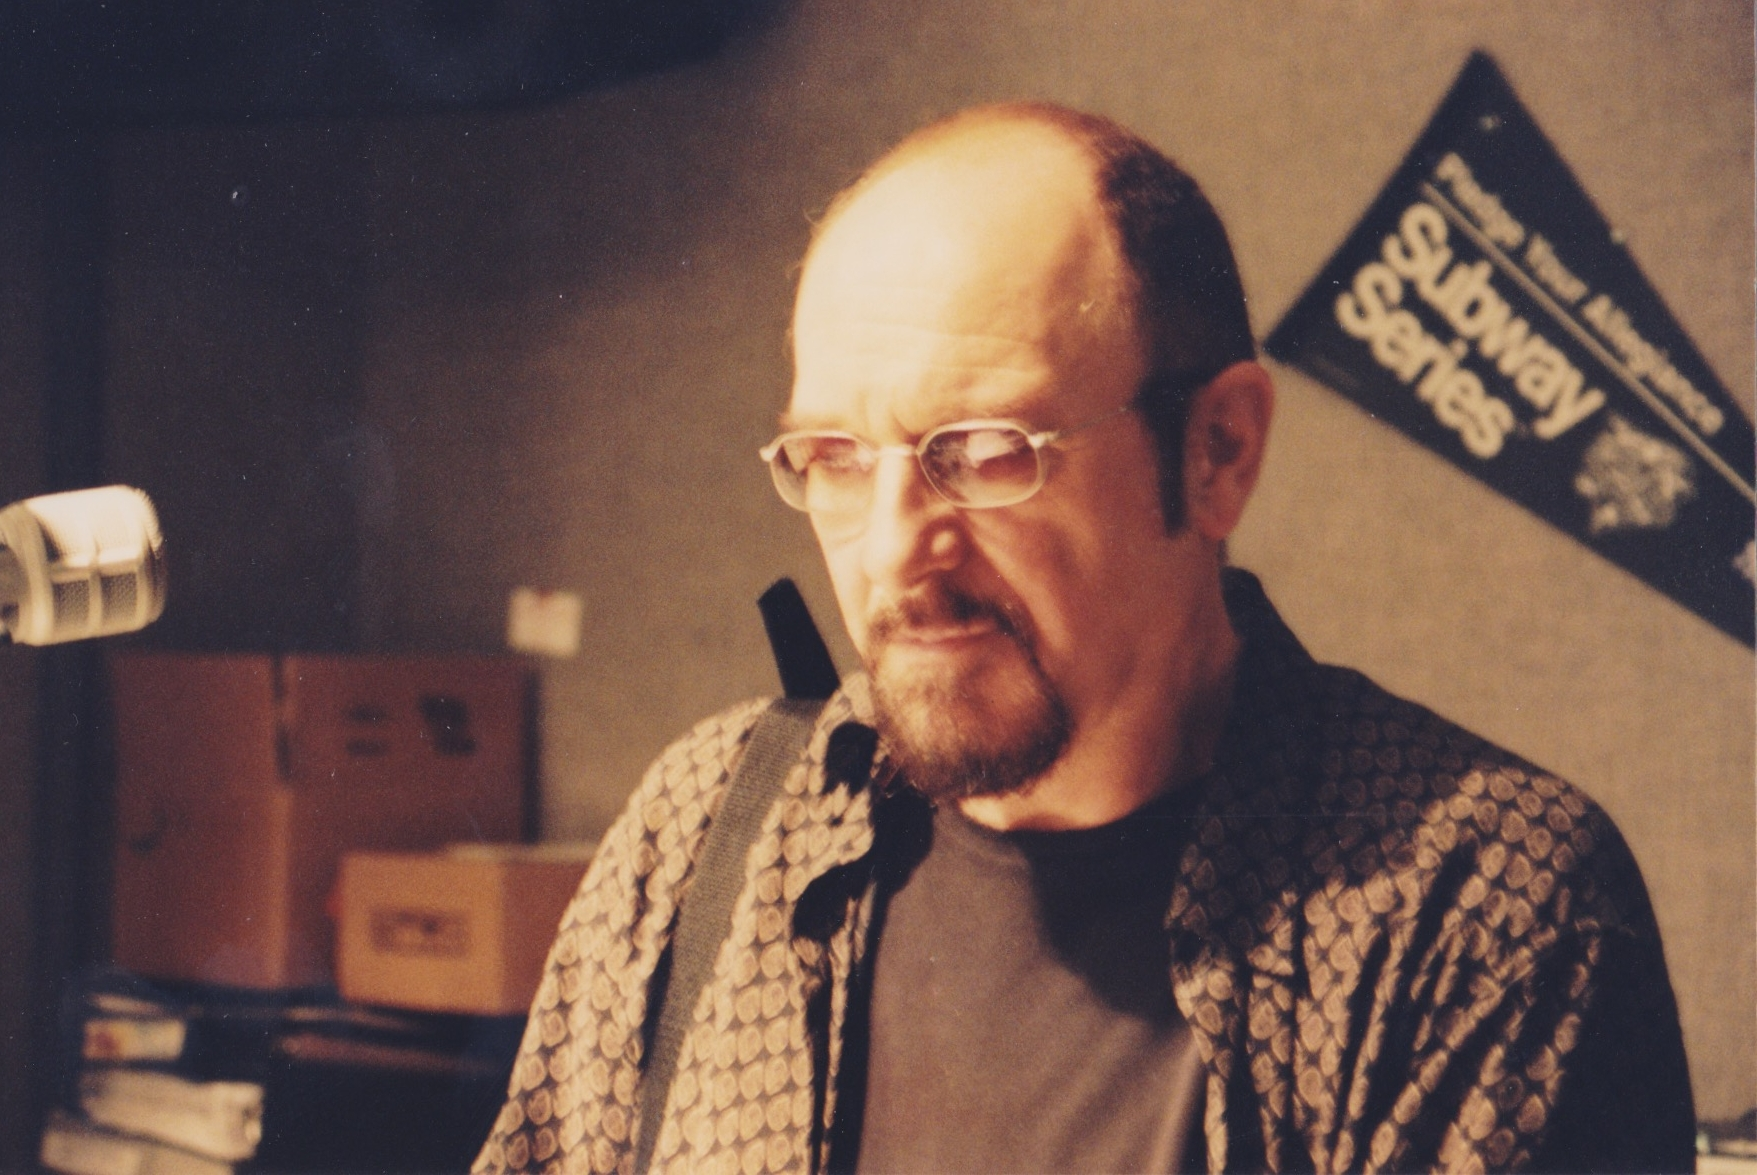 Ian Anderson. Photo by RD Mathers